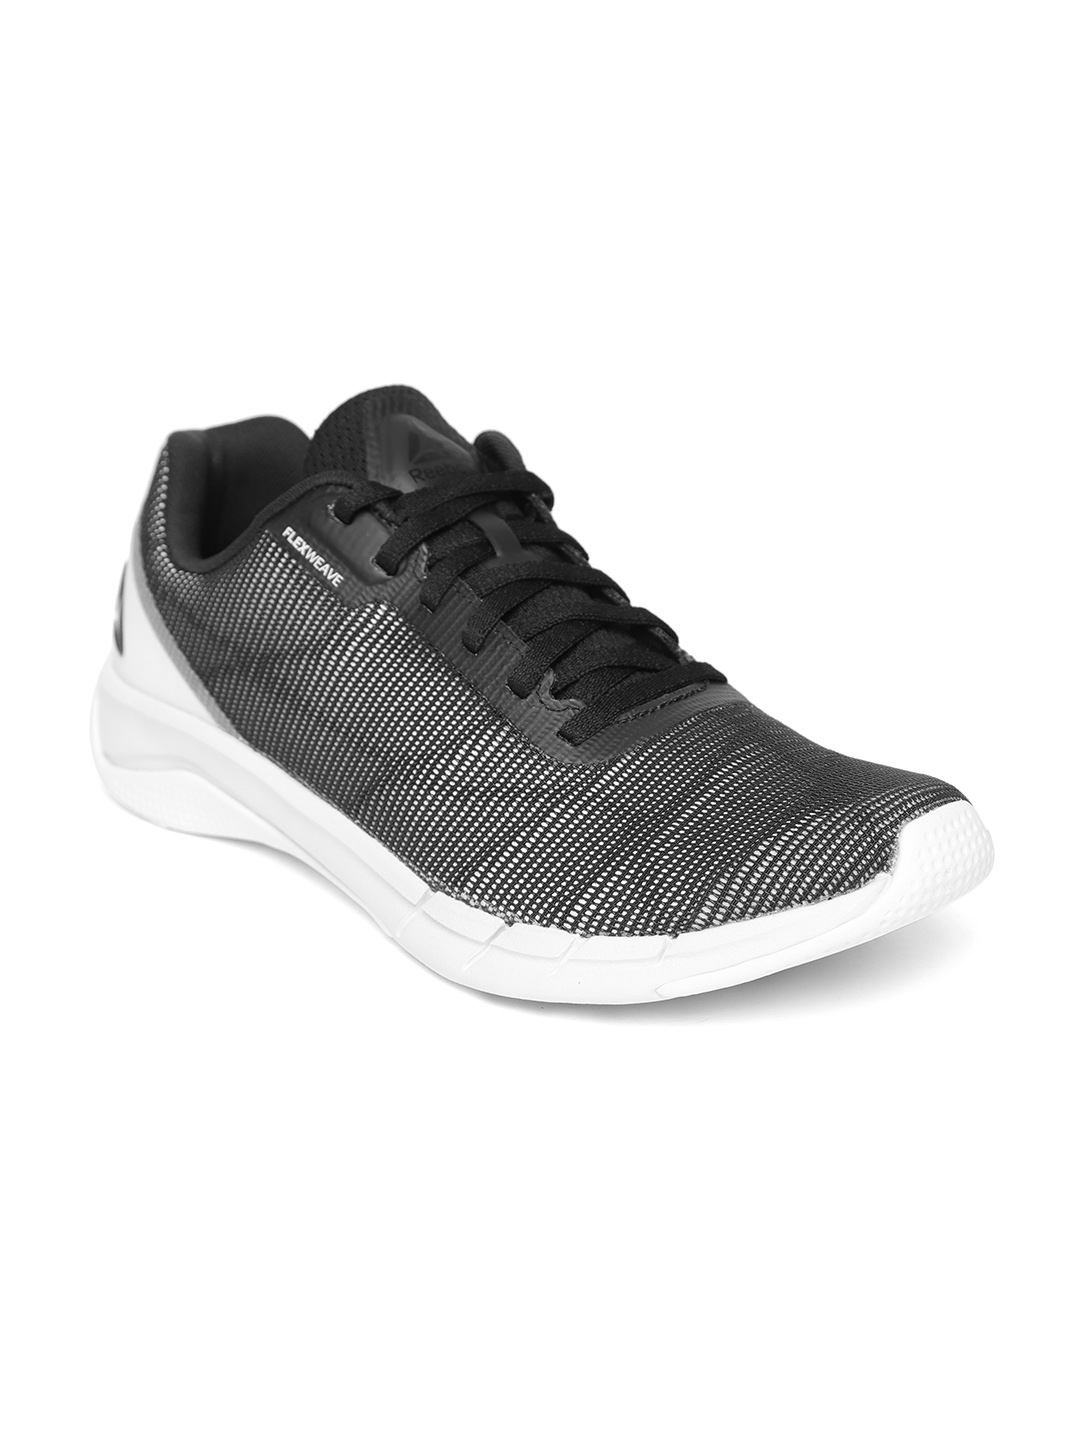 5ad19c5b6d44d9 Buy Reebok Men Black Fast Flexweave Running Shoes - Sports Shoes for ...